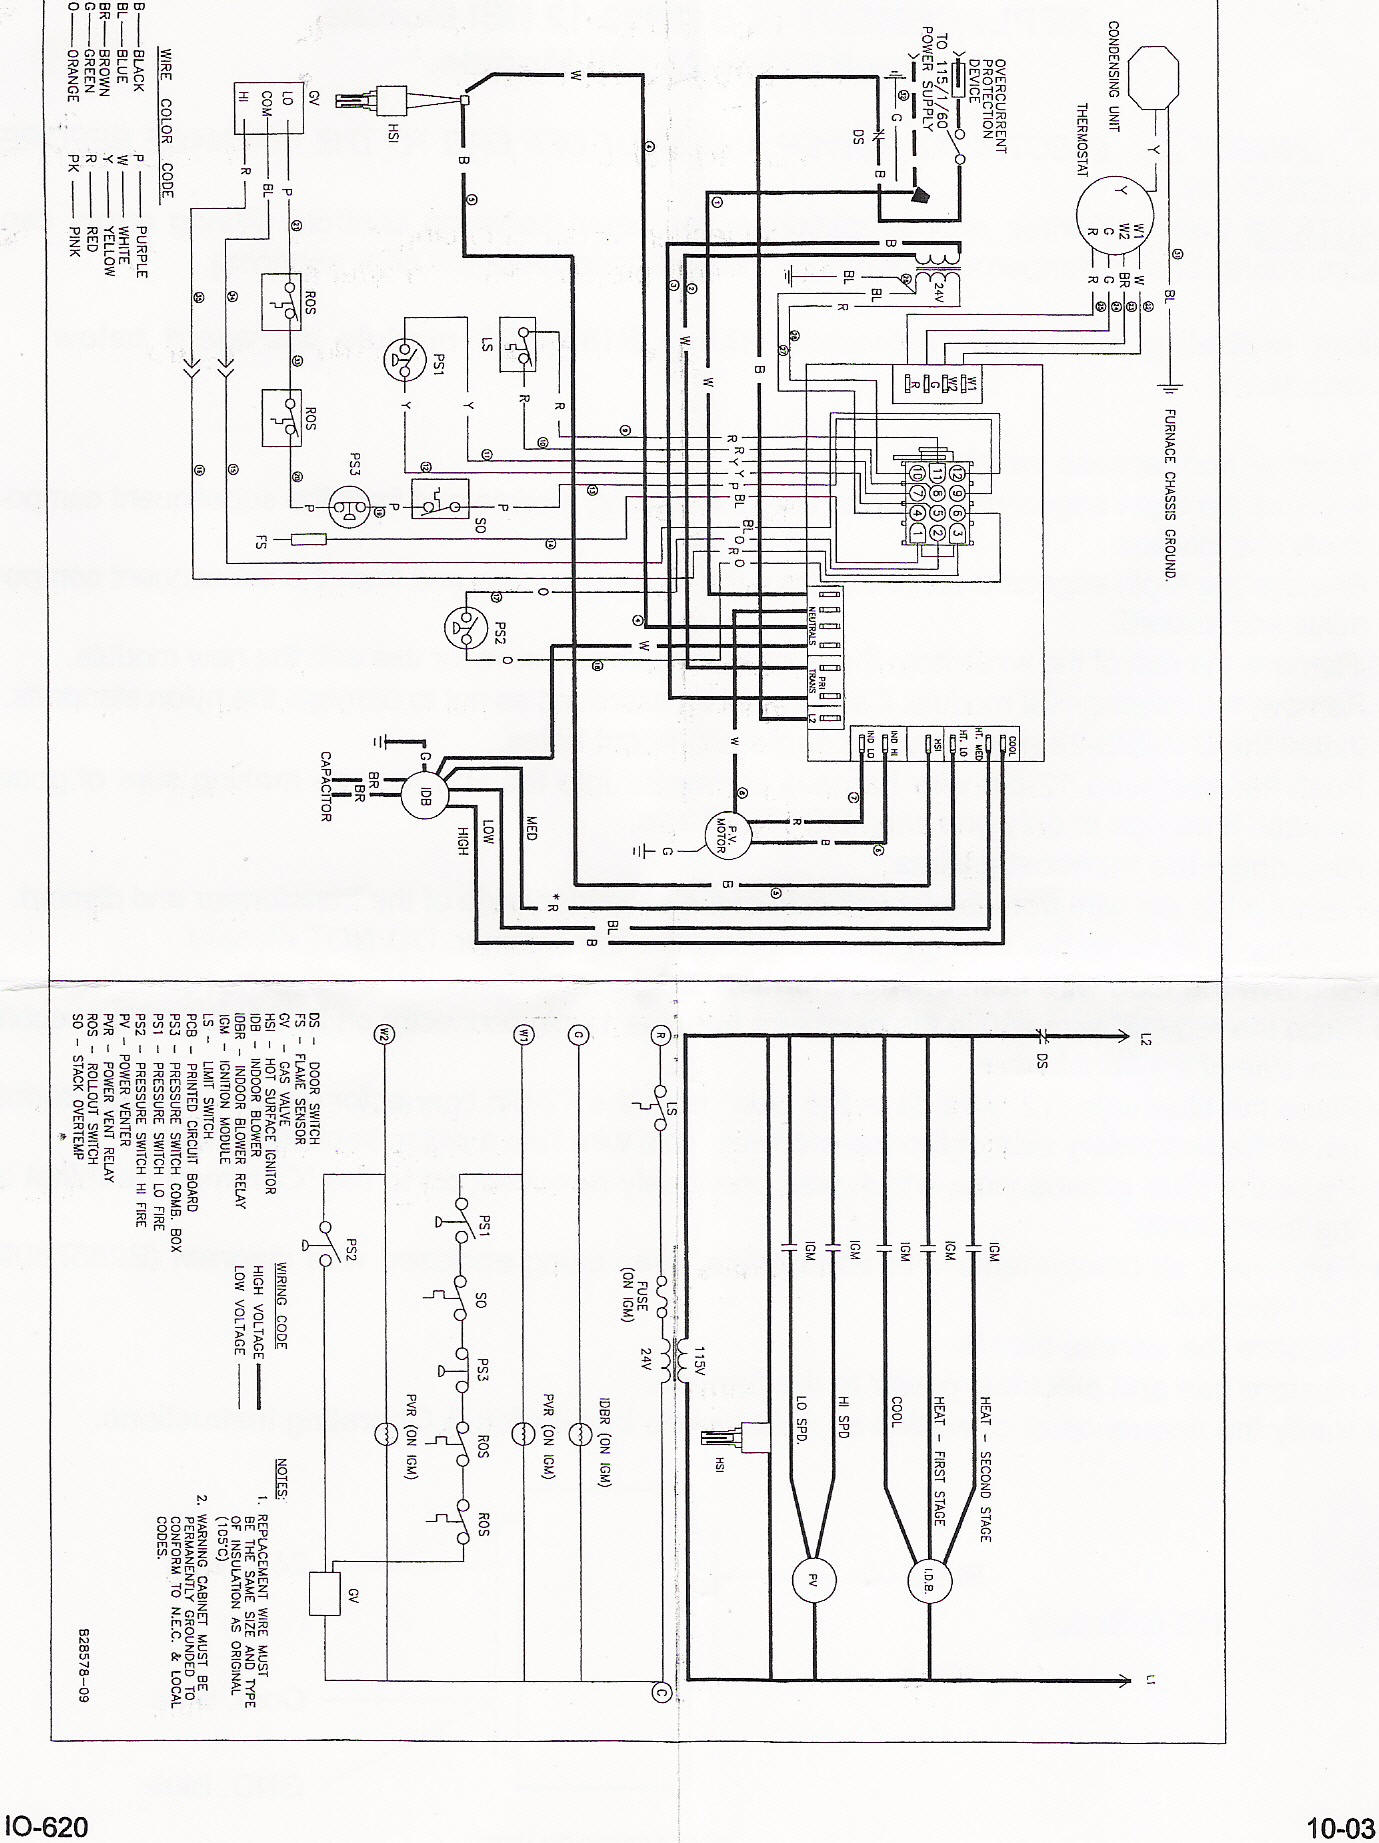 goodma2 instr goodman control board b18099 23 instructions goodman defrost board wiring diagram at pacquiaovsvargaslive.co